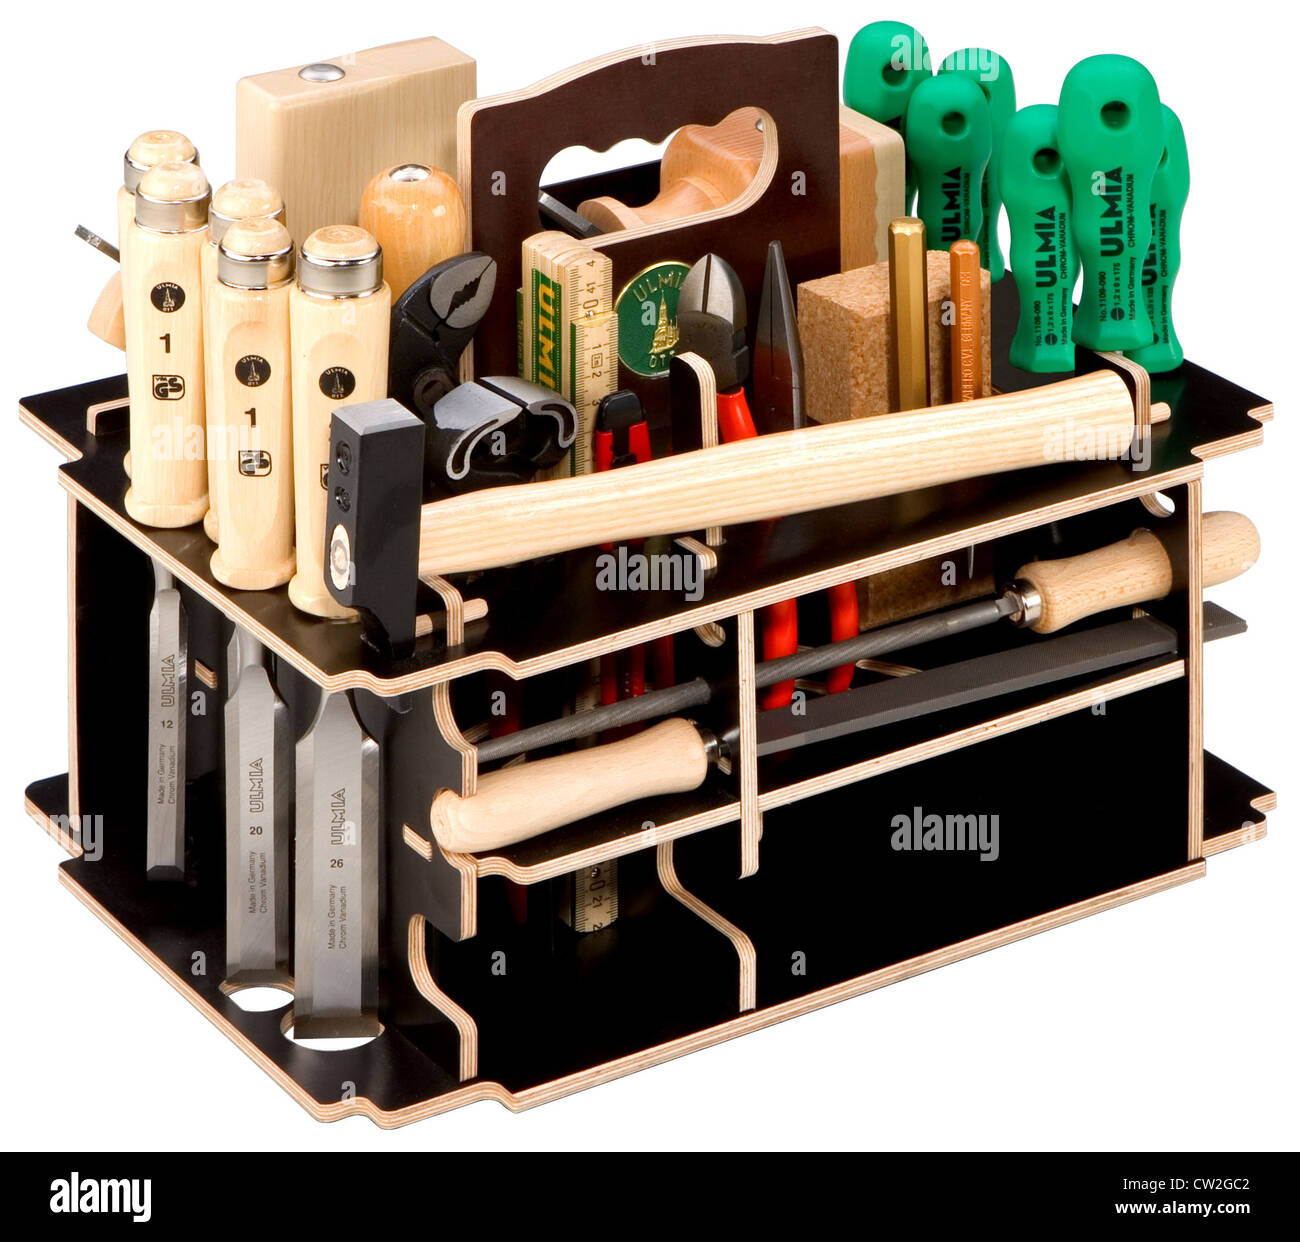 Berlin, tool kit - Stock Image